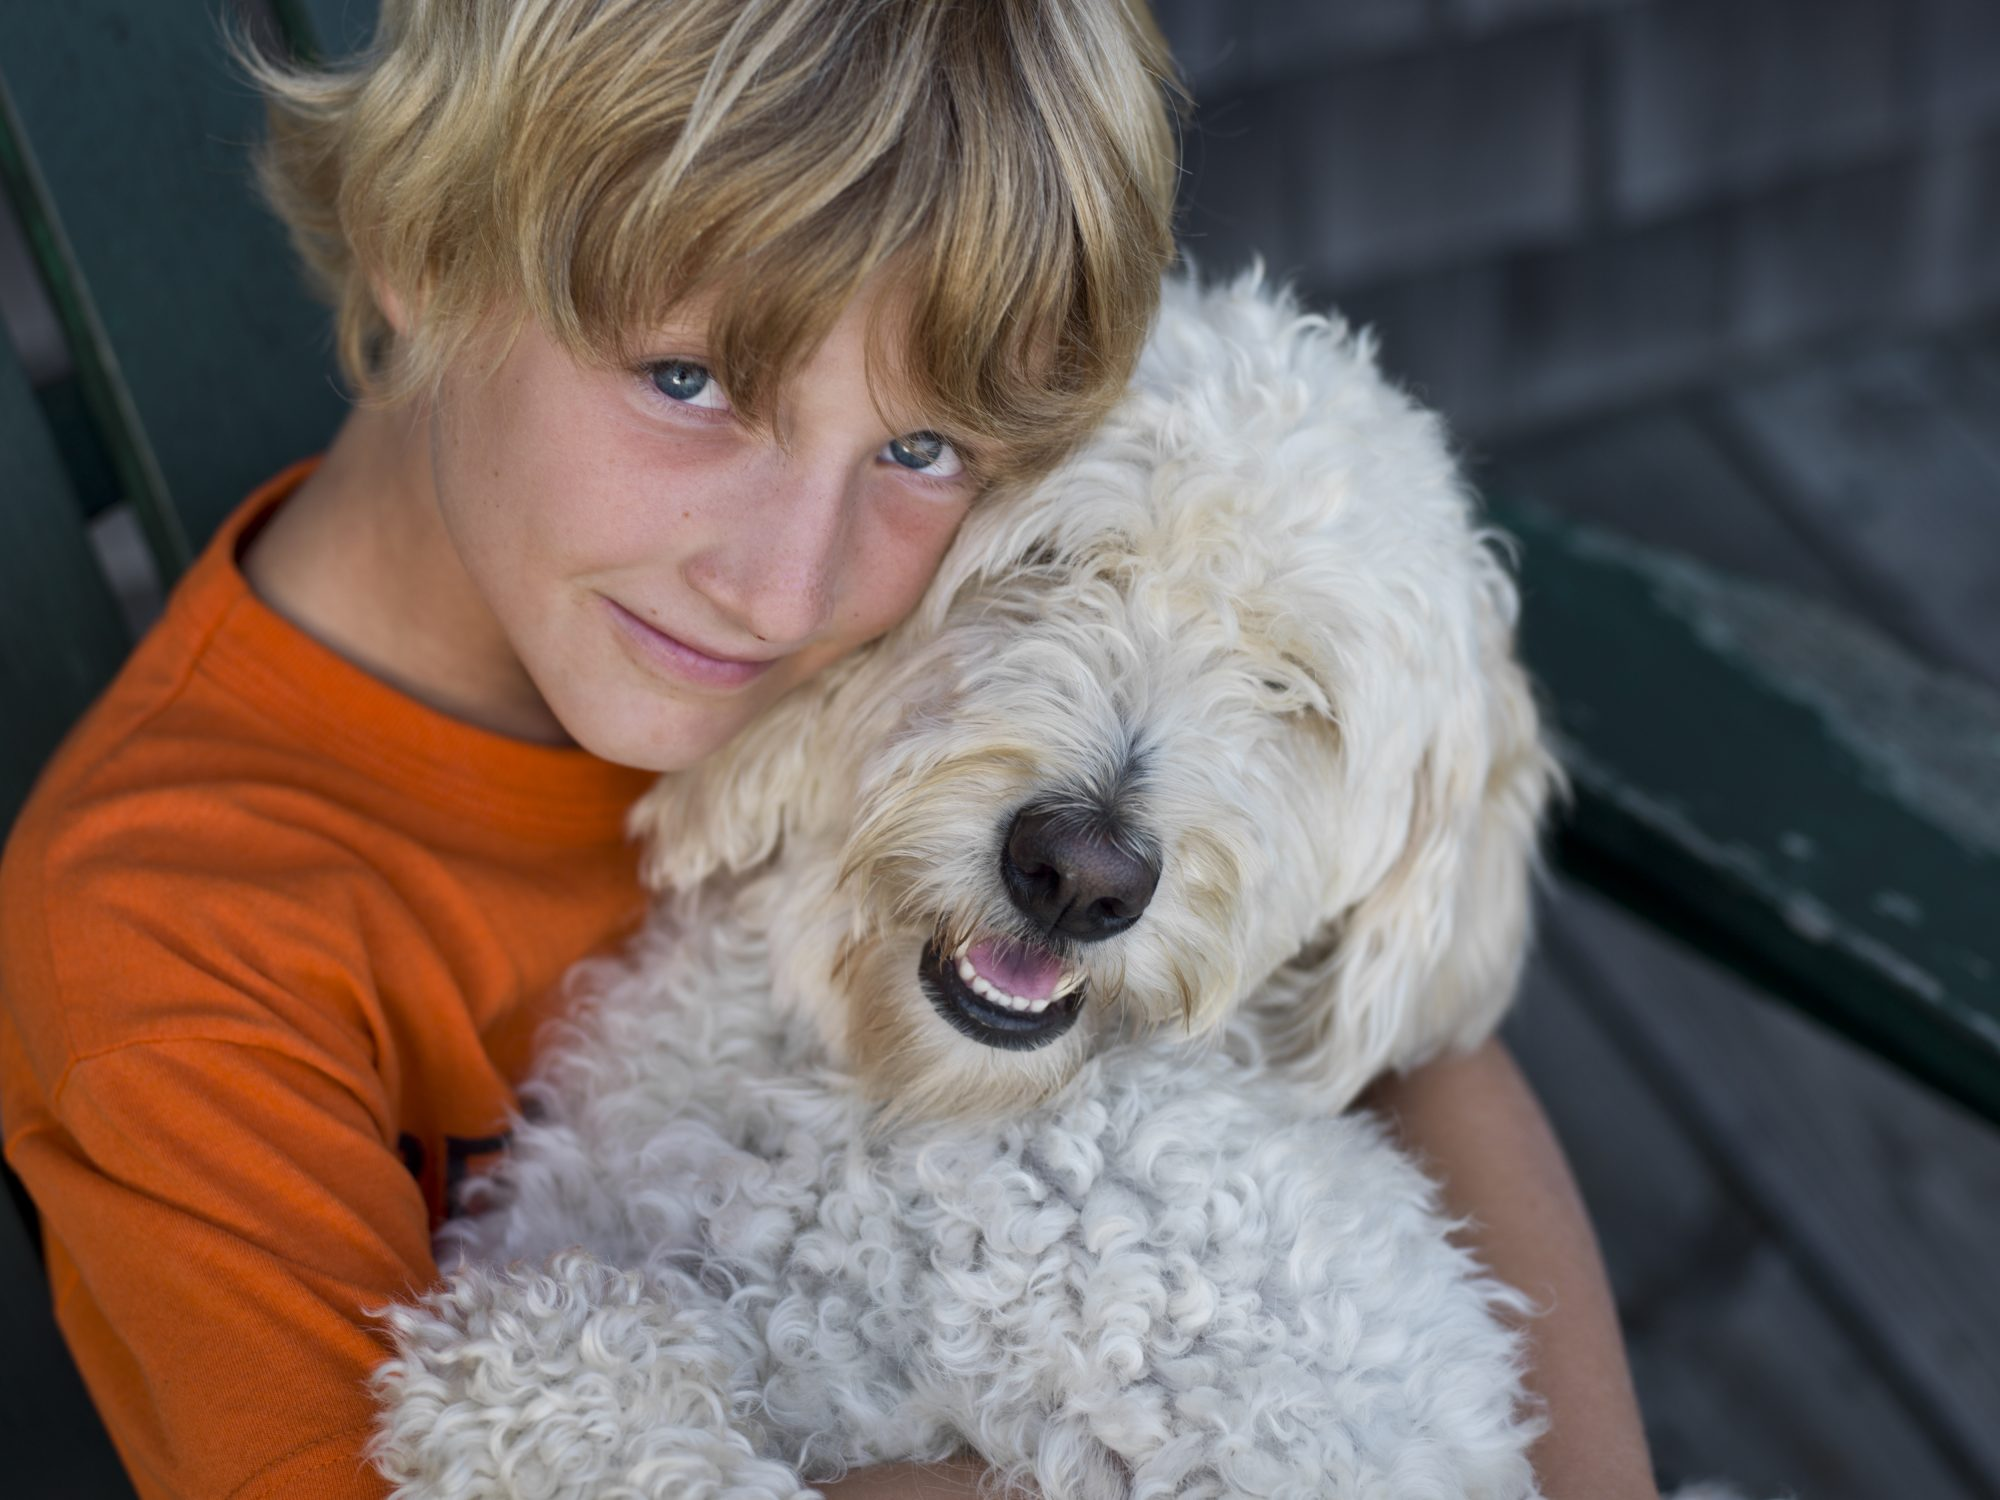 Boy with White Fluffy Dog